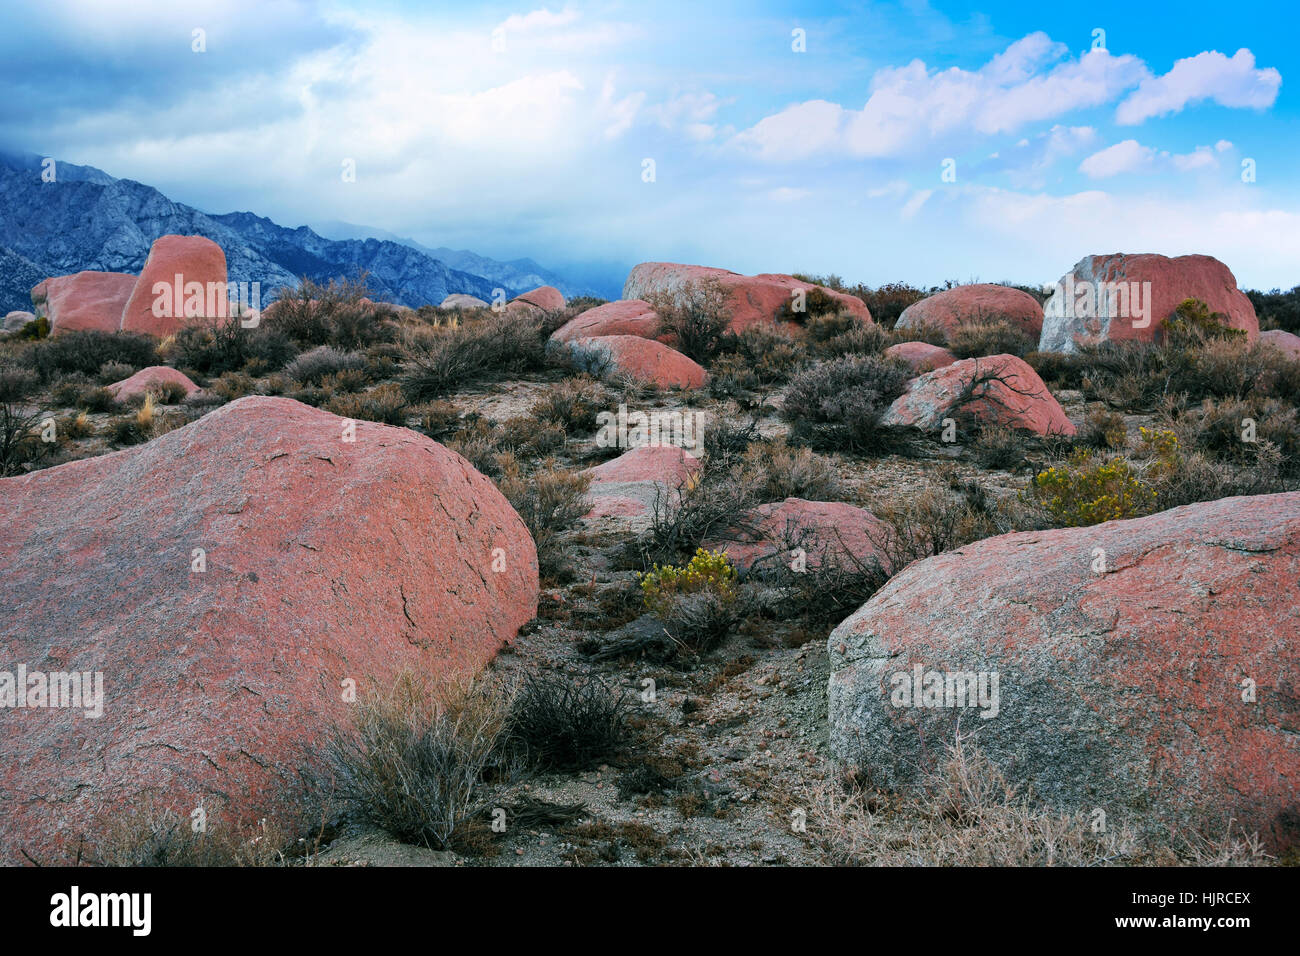 Sierra Nevada Mountains at Alabama Hills, close to the town of Lone Pine, California, USA. Rocks in foreground covered - Stock Image